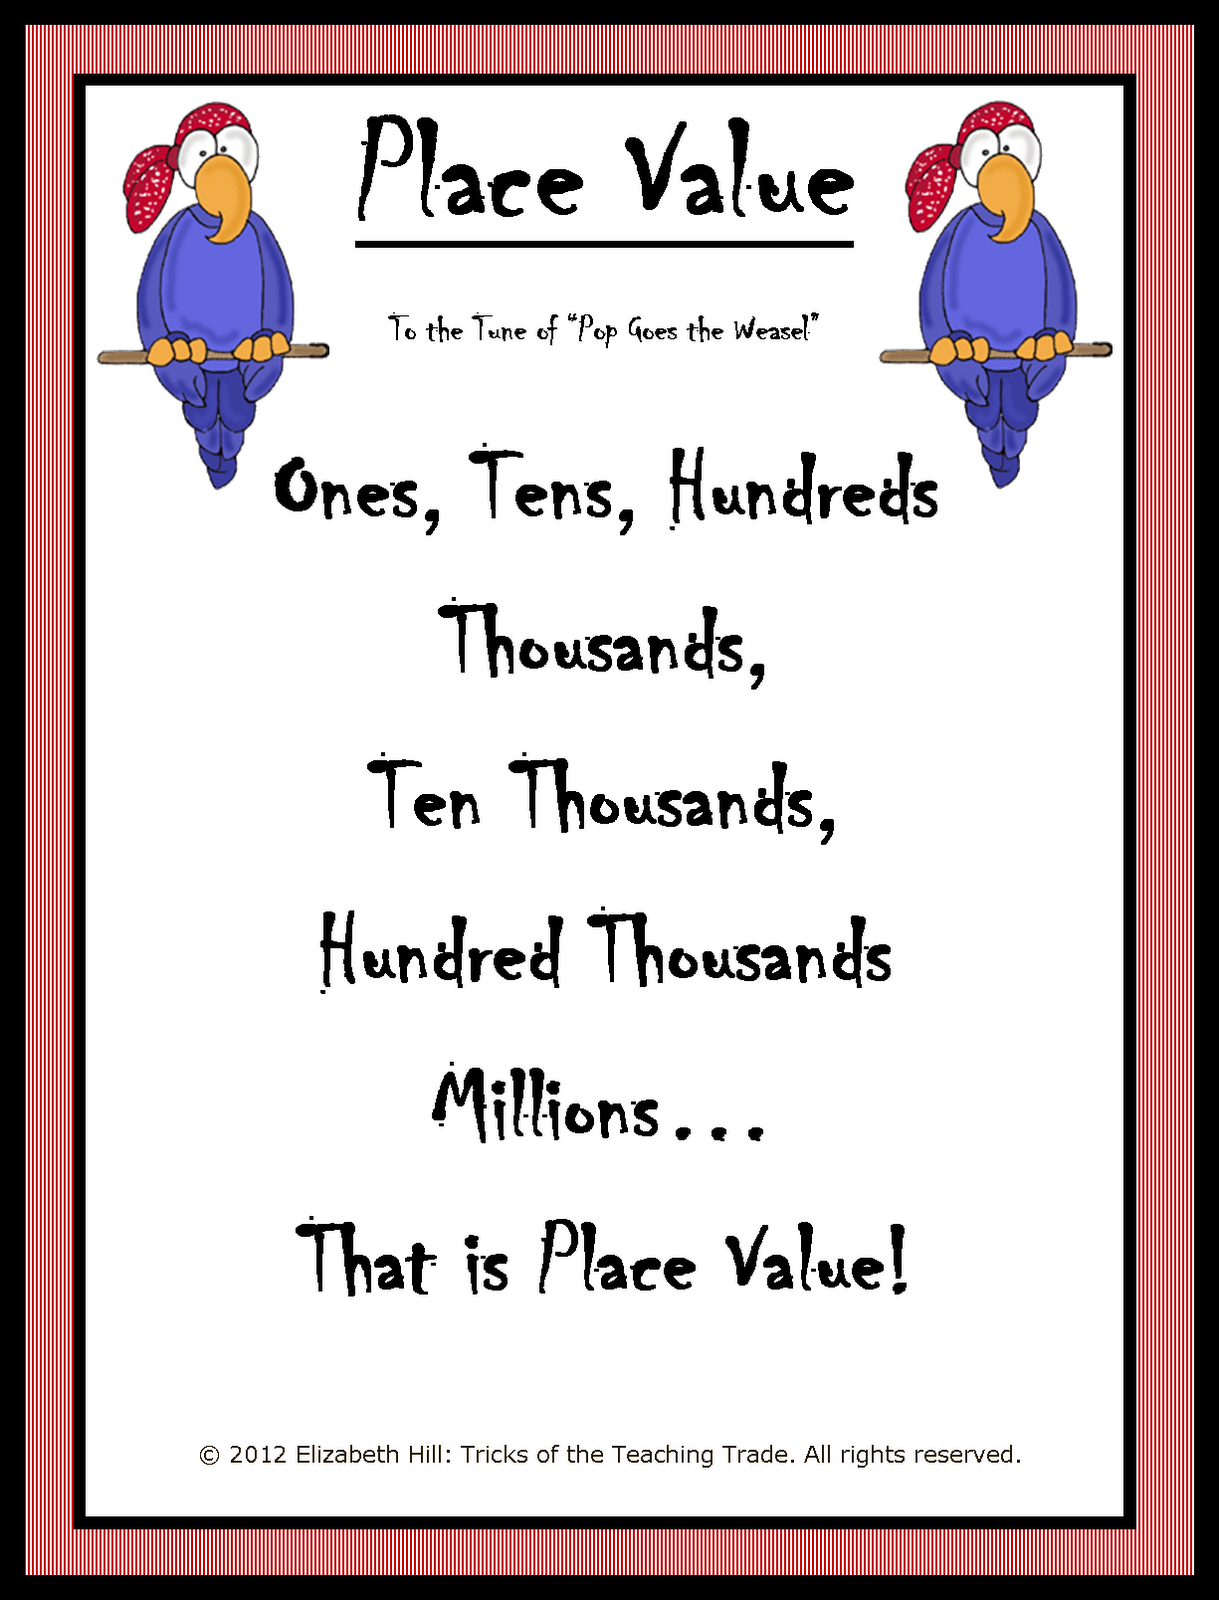 worksheet Place Value Puzzler mrs hills perfect p i r a t e s place value it allows students to work along with me and see many visual representations of value